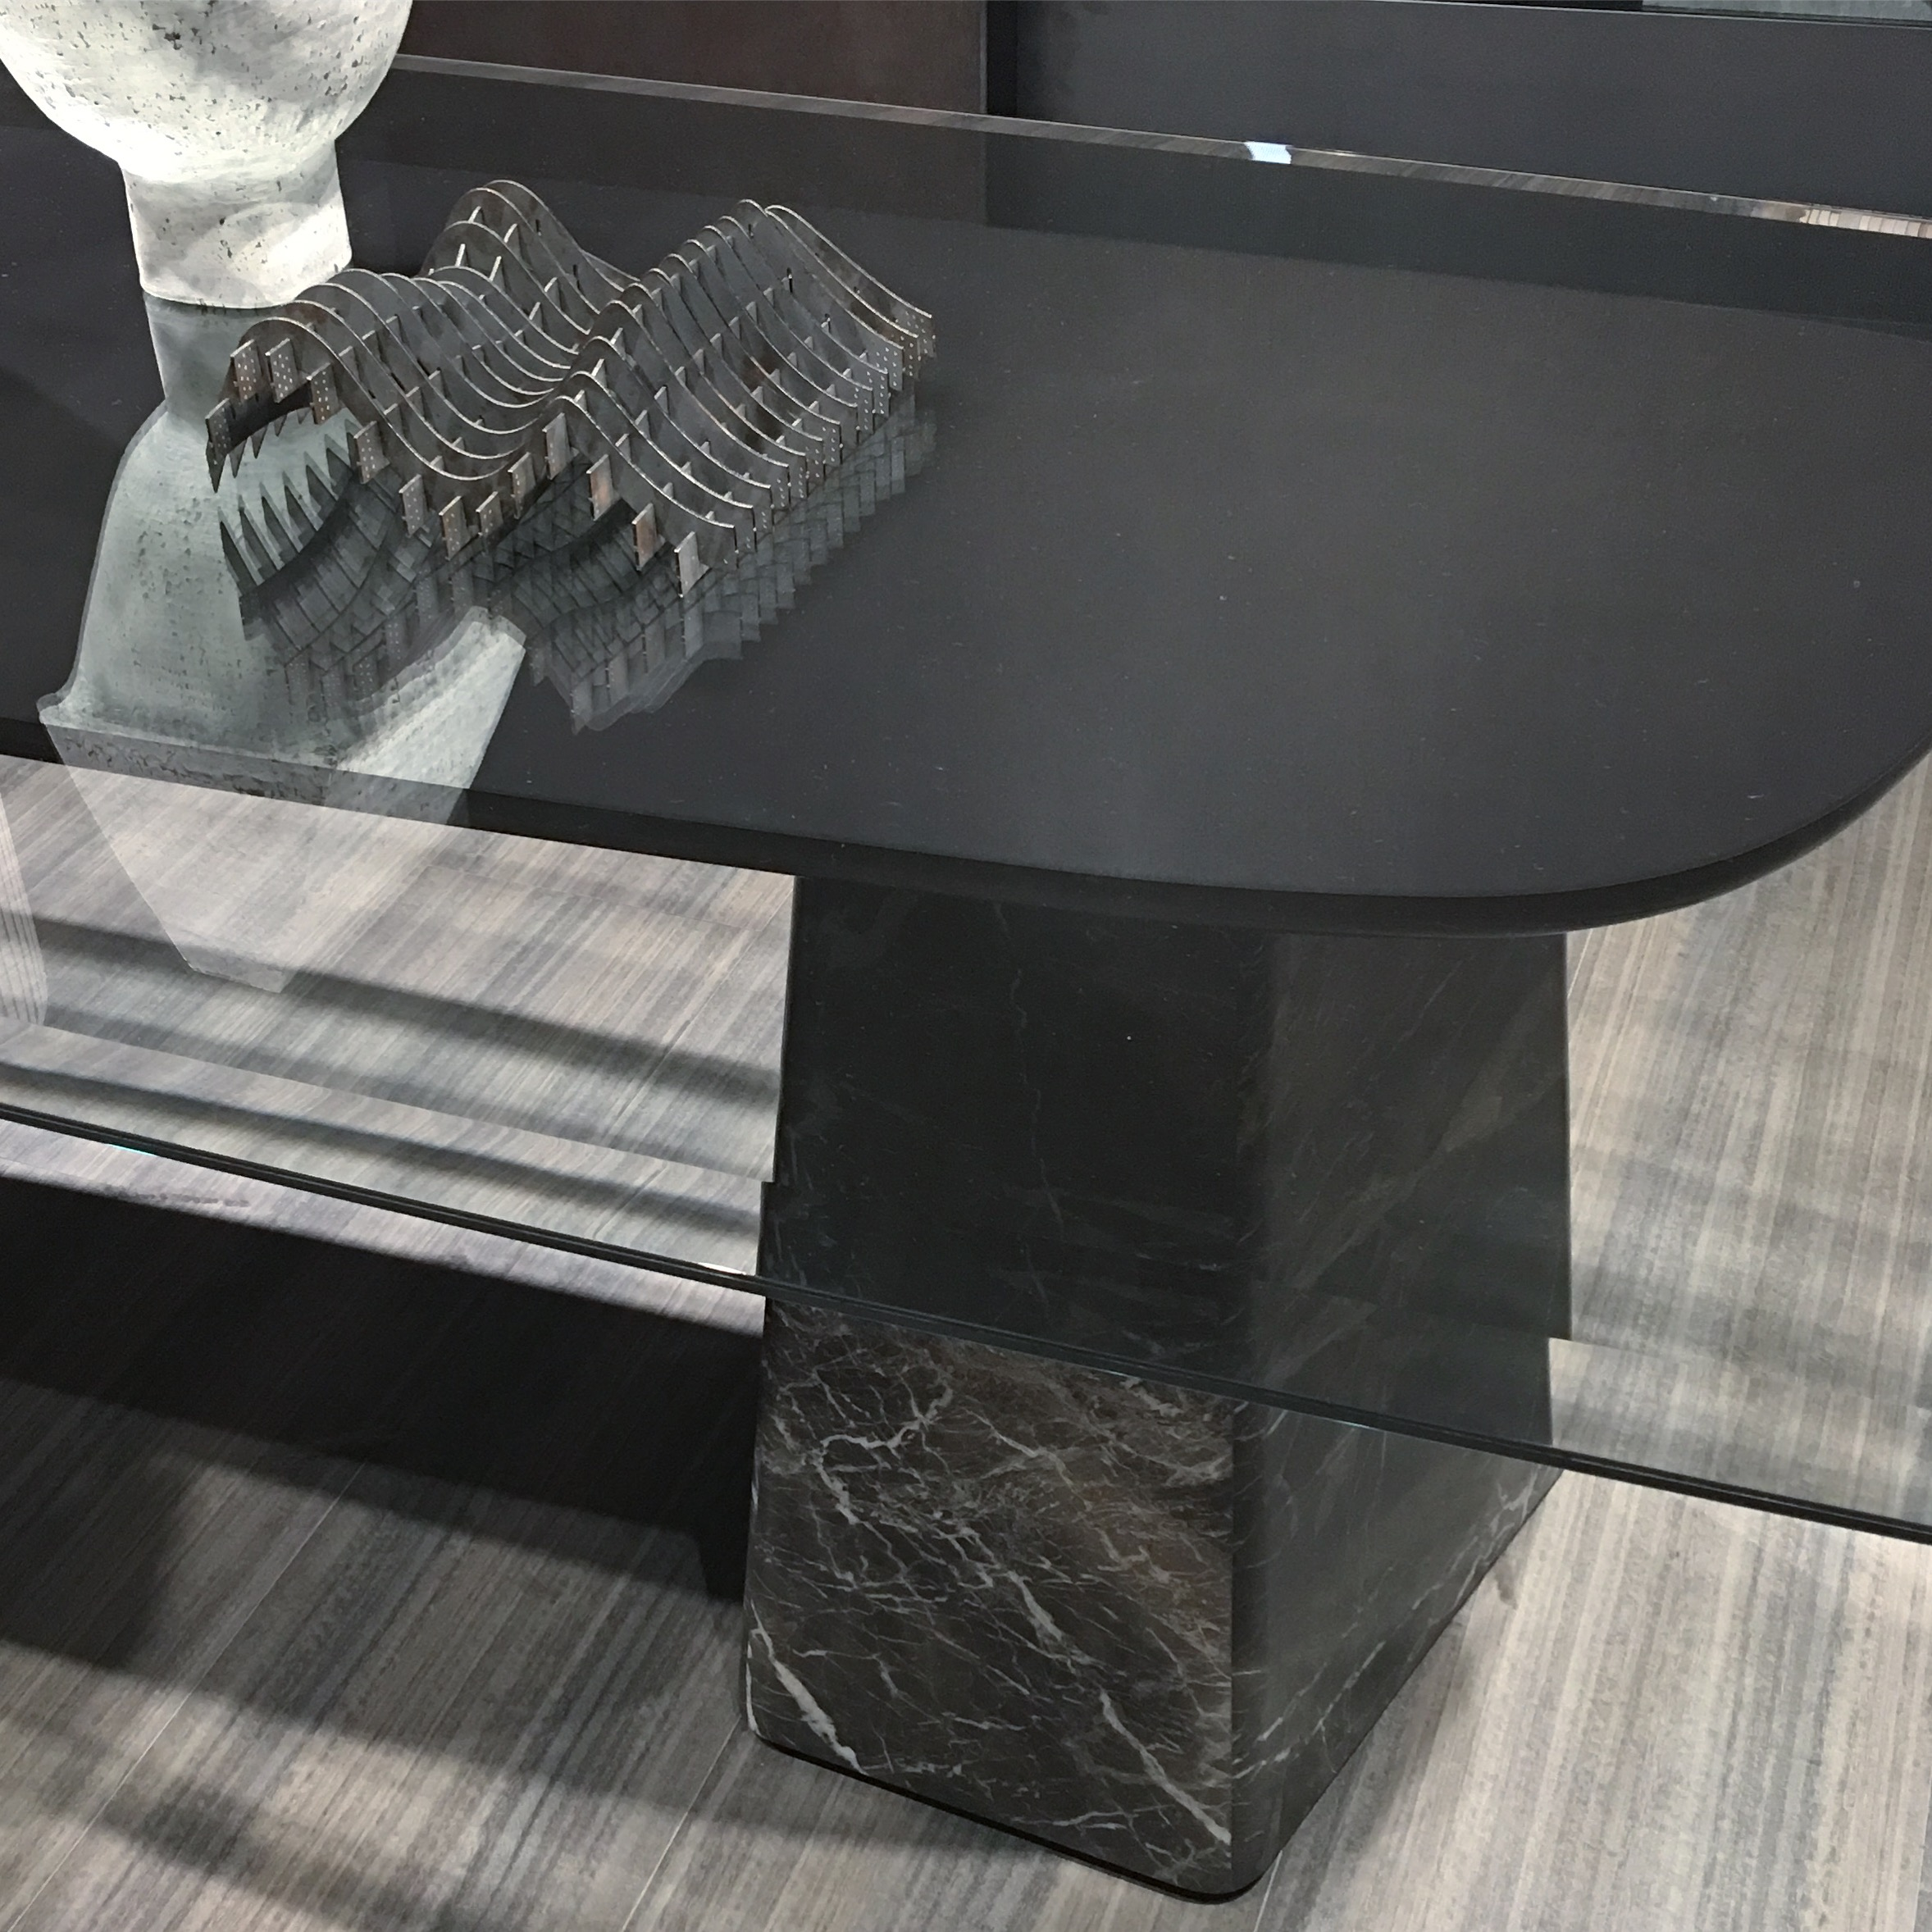 As mentioned in Trend 7, the use of marble was a key look at the fair in 2017. Here at Molten & Co. a striking black marble was used to create a striking and sculptural base for an otherwise simple glass-topped table. Photograph: Michelle Ogundehin